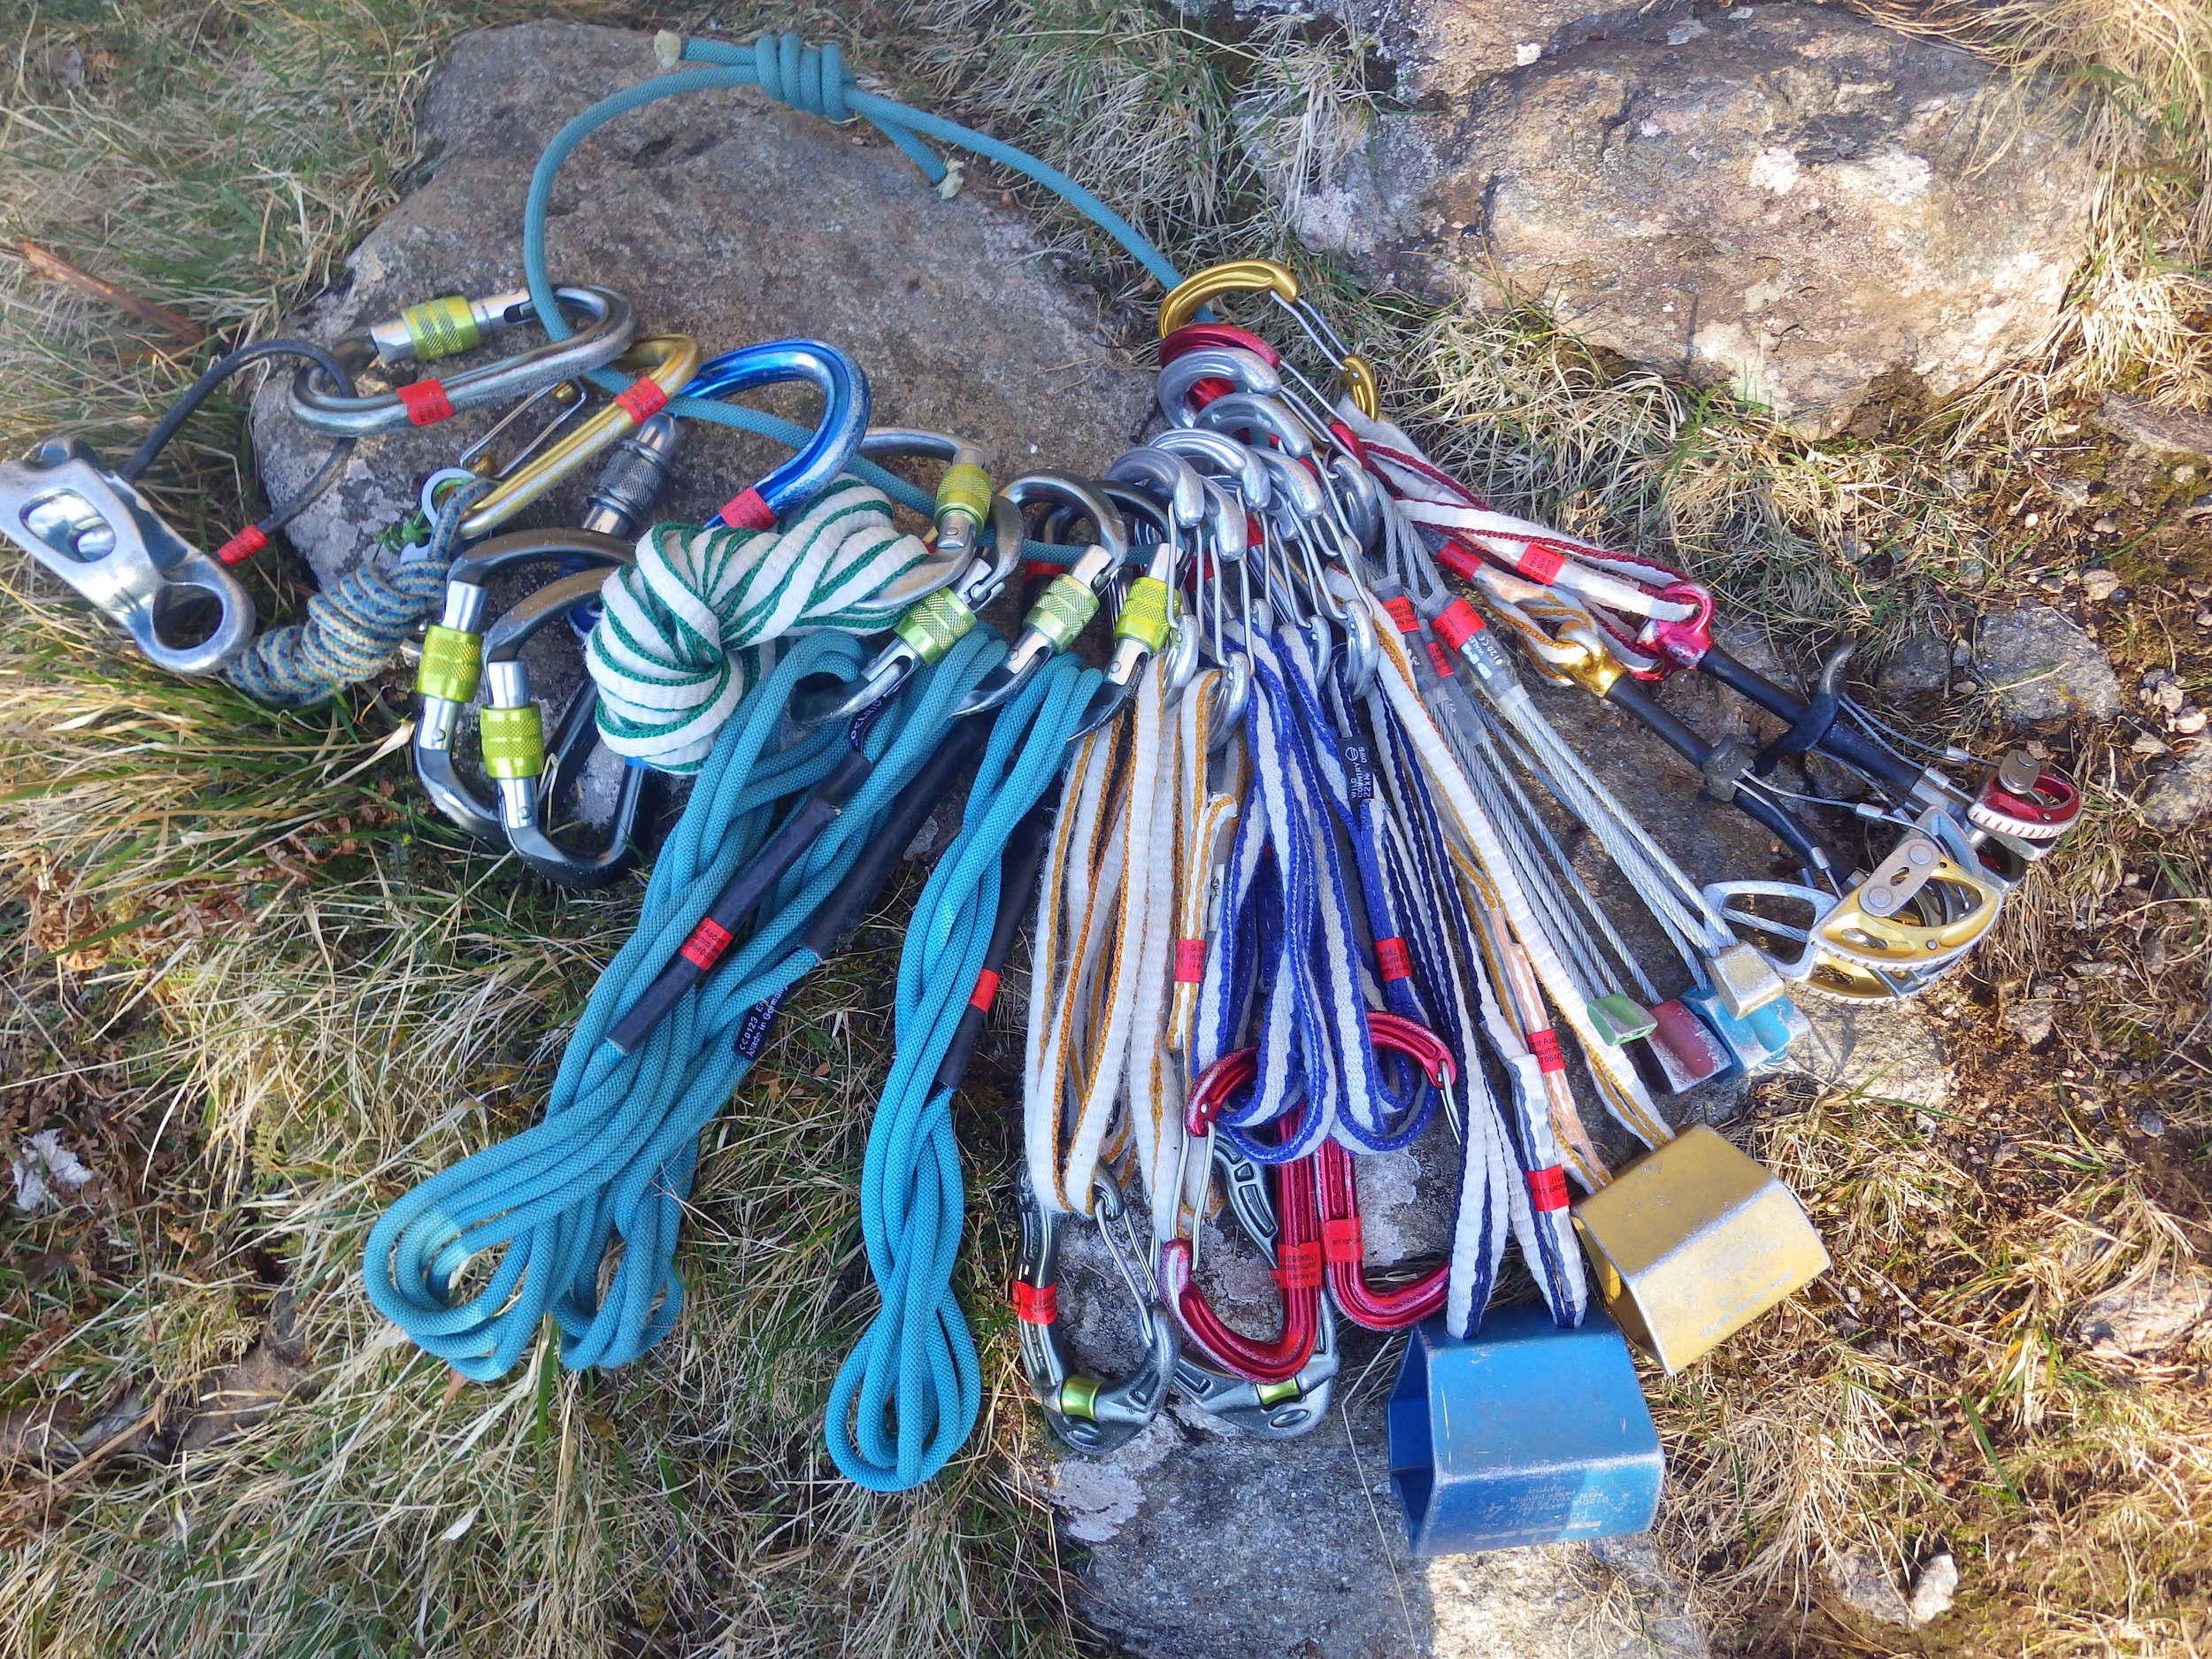 A typical scrambling rack